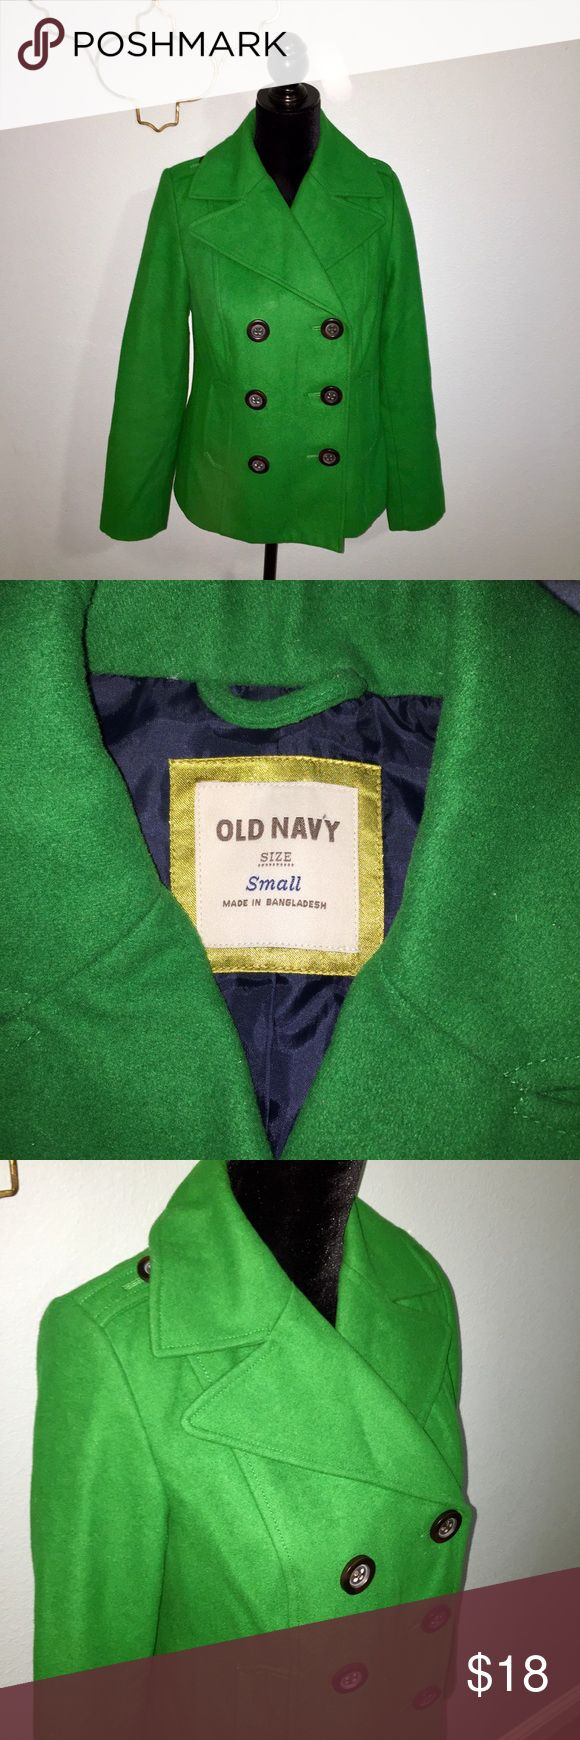 Old Navy Kelly green pea coat size small Cute kelly green pea coat from Old Navy. Size small. Chest 36 inches, shoulder to hem 24 inches, sleeve 30 inches. 58% polyester, 42% wool. Old Navy Jackets & Coats Pea Coats